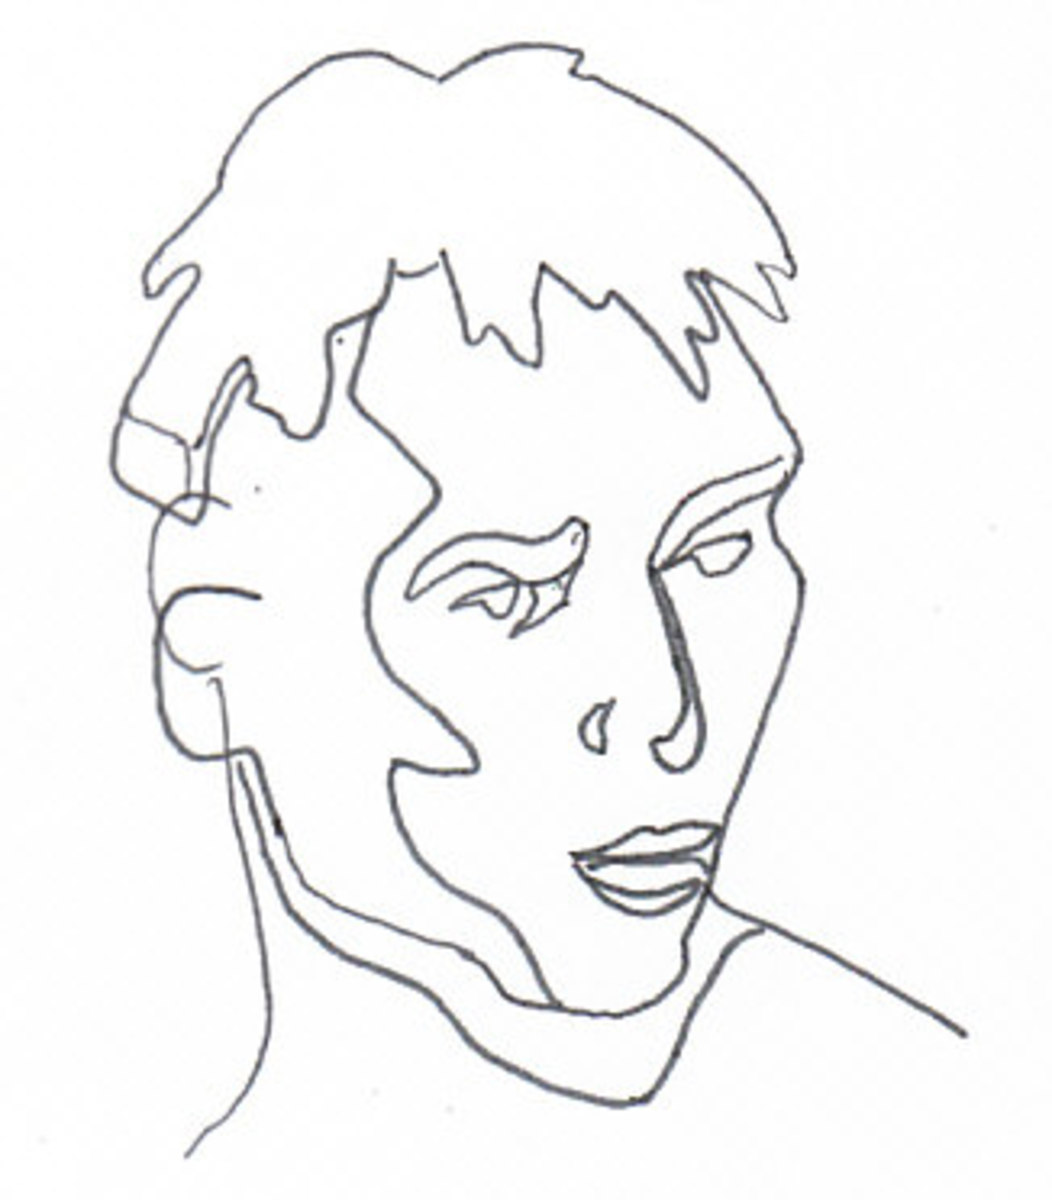 Contour Line Drawing Definition : Contour drawing definition